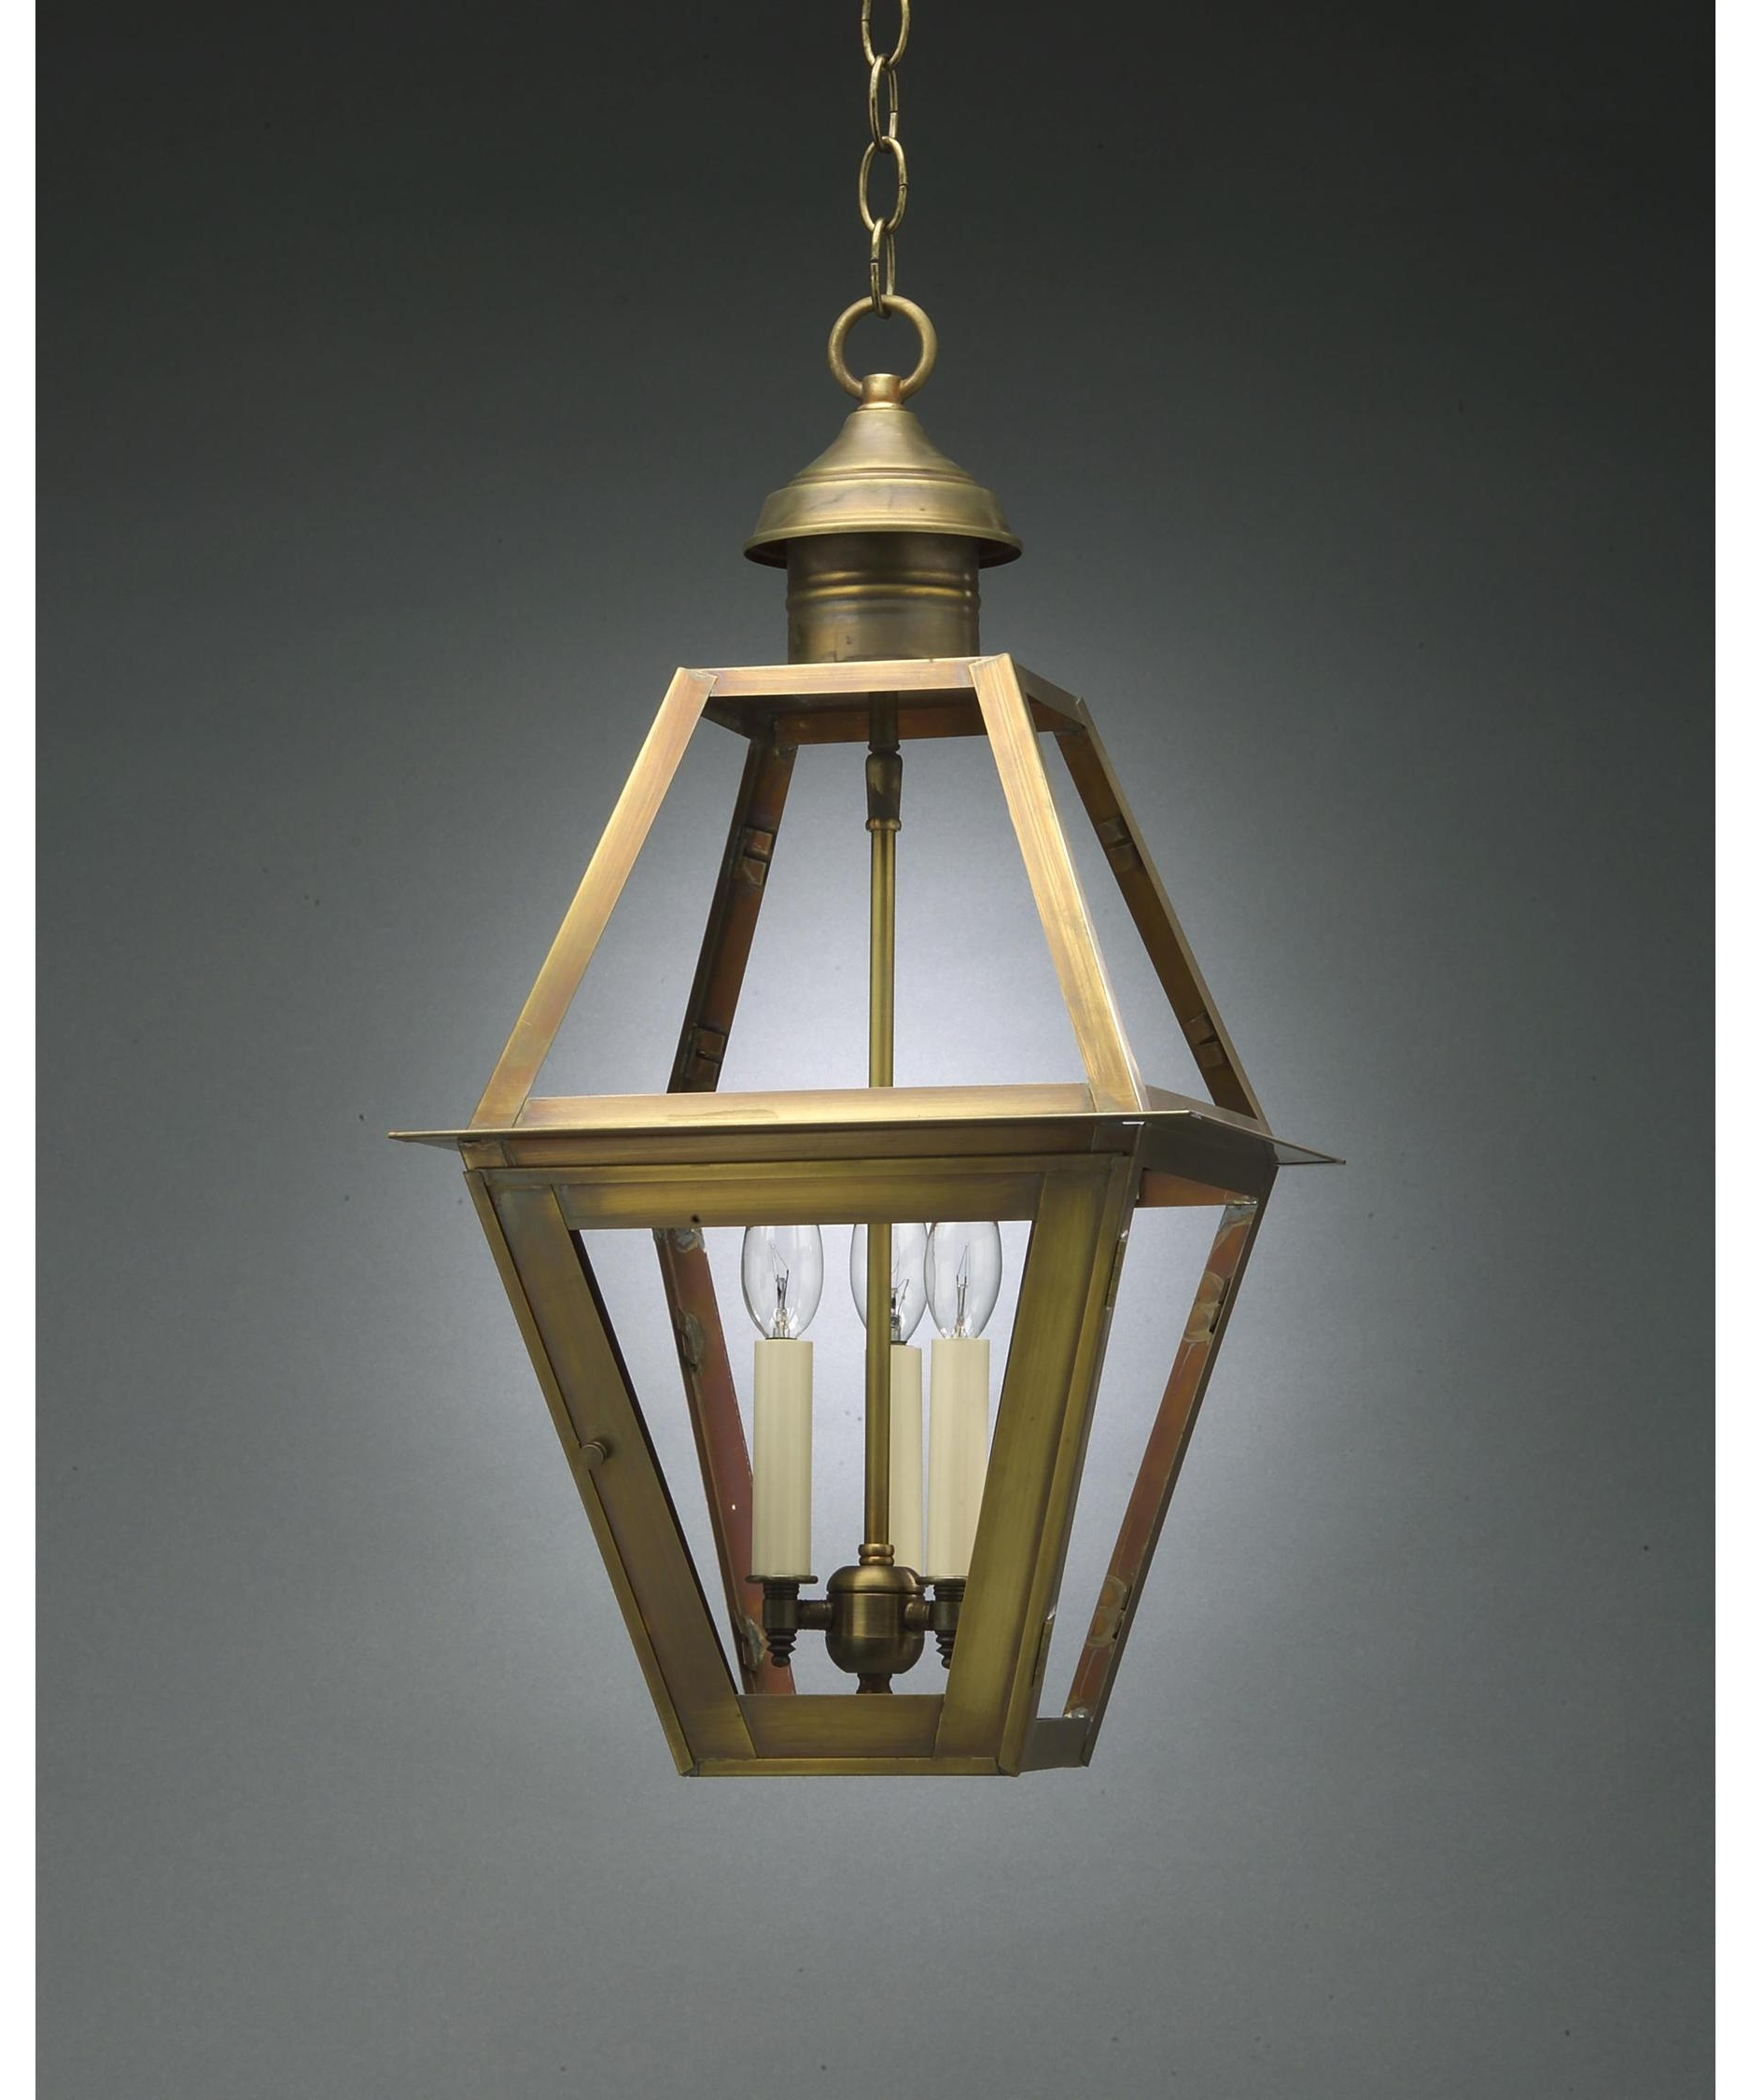 Outdoor Pendant Lanterns For Well Known Northeast Lantern 1012 Lt3 Boston 12 Inch Wide 3 Light Outdoor (View 6 of 20)